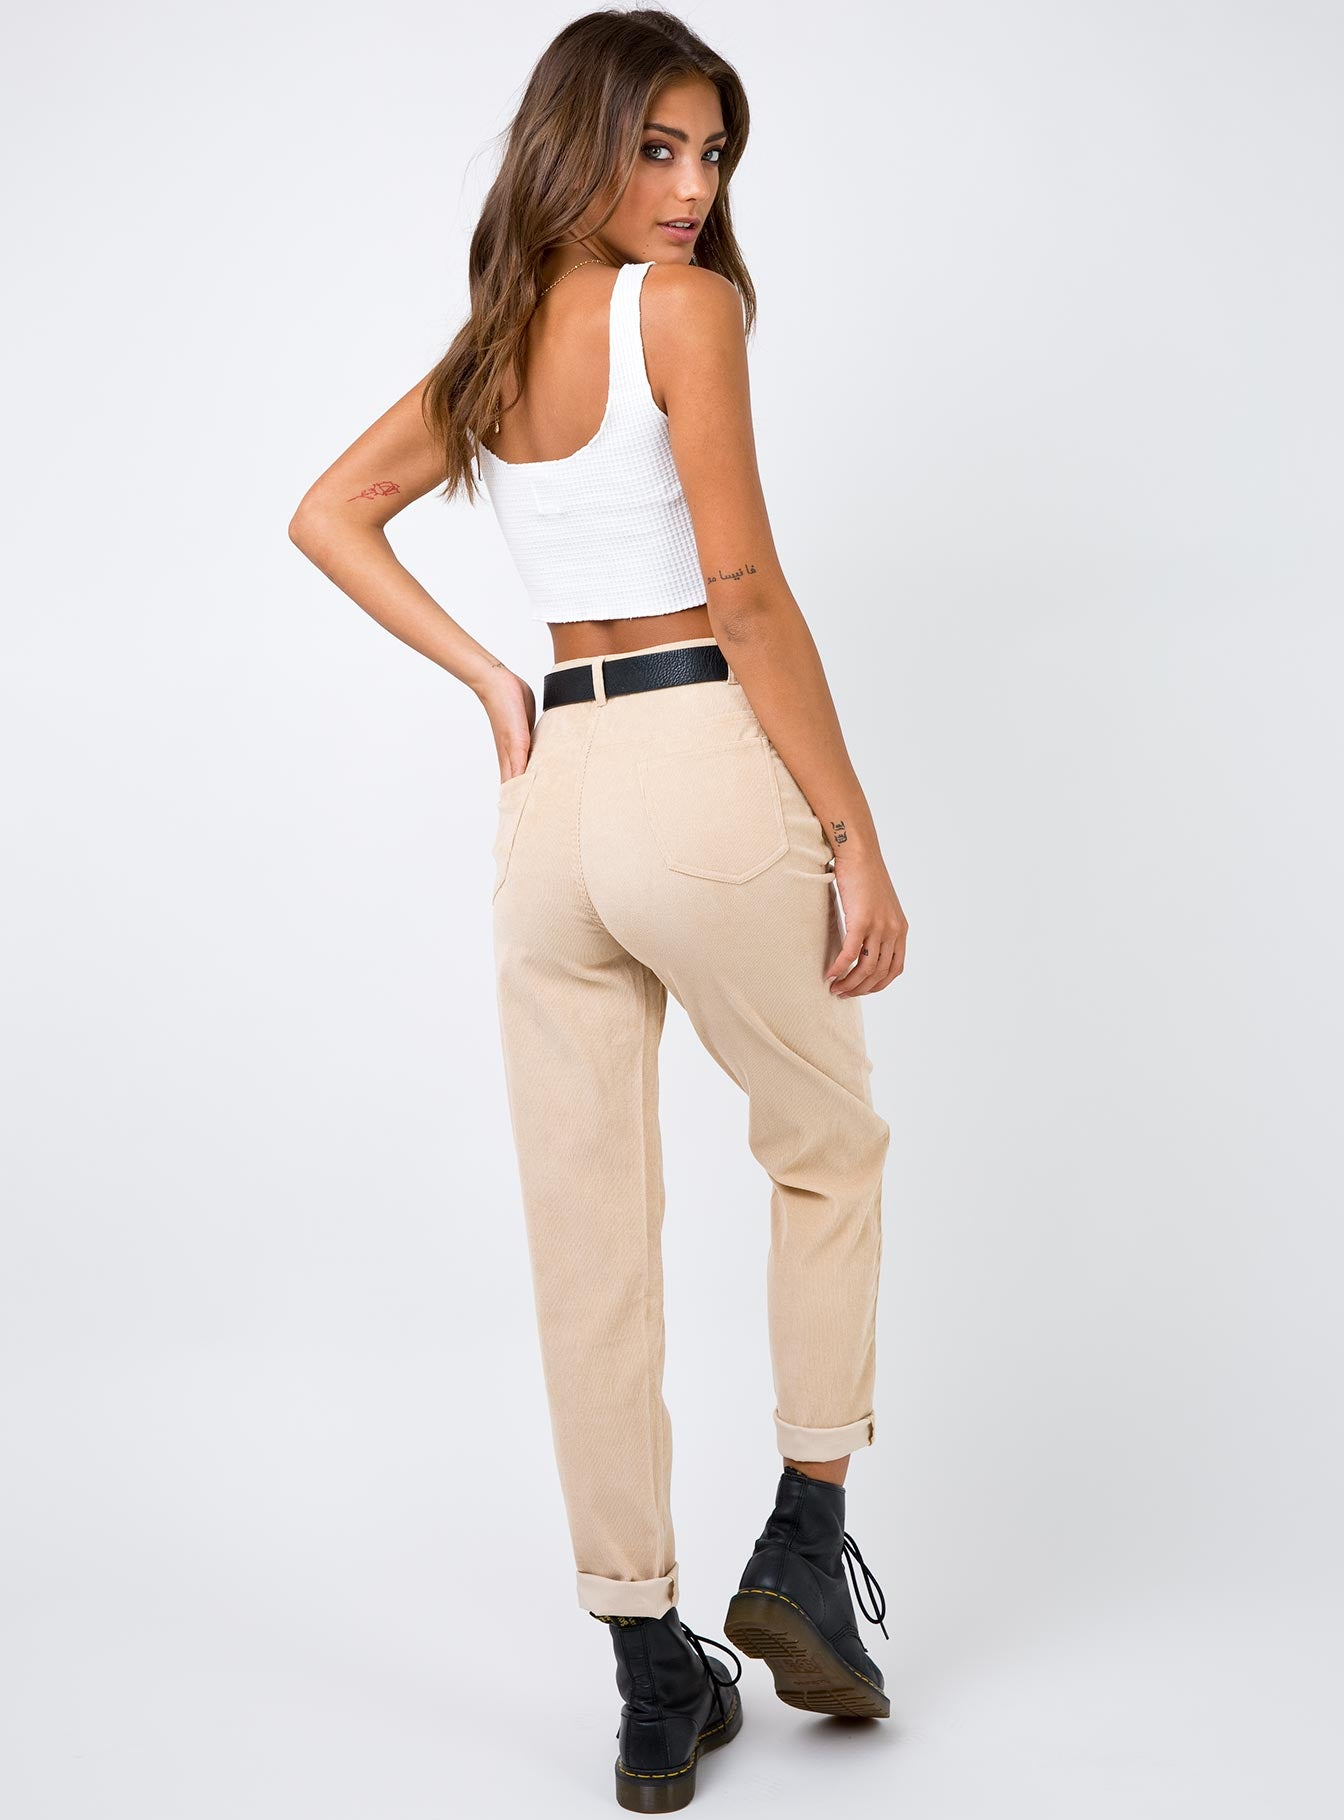 The Kaia Pants Beige